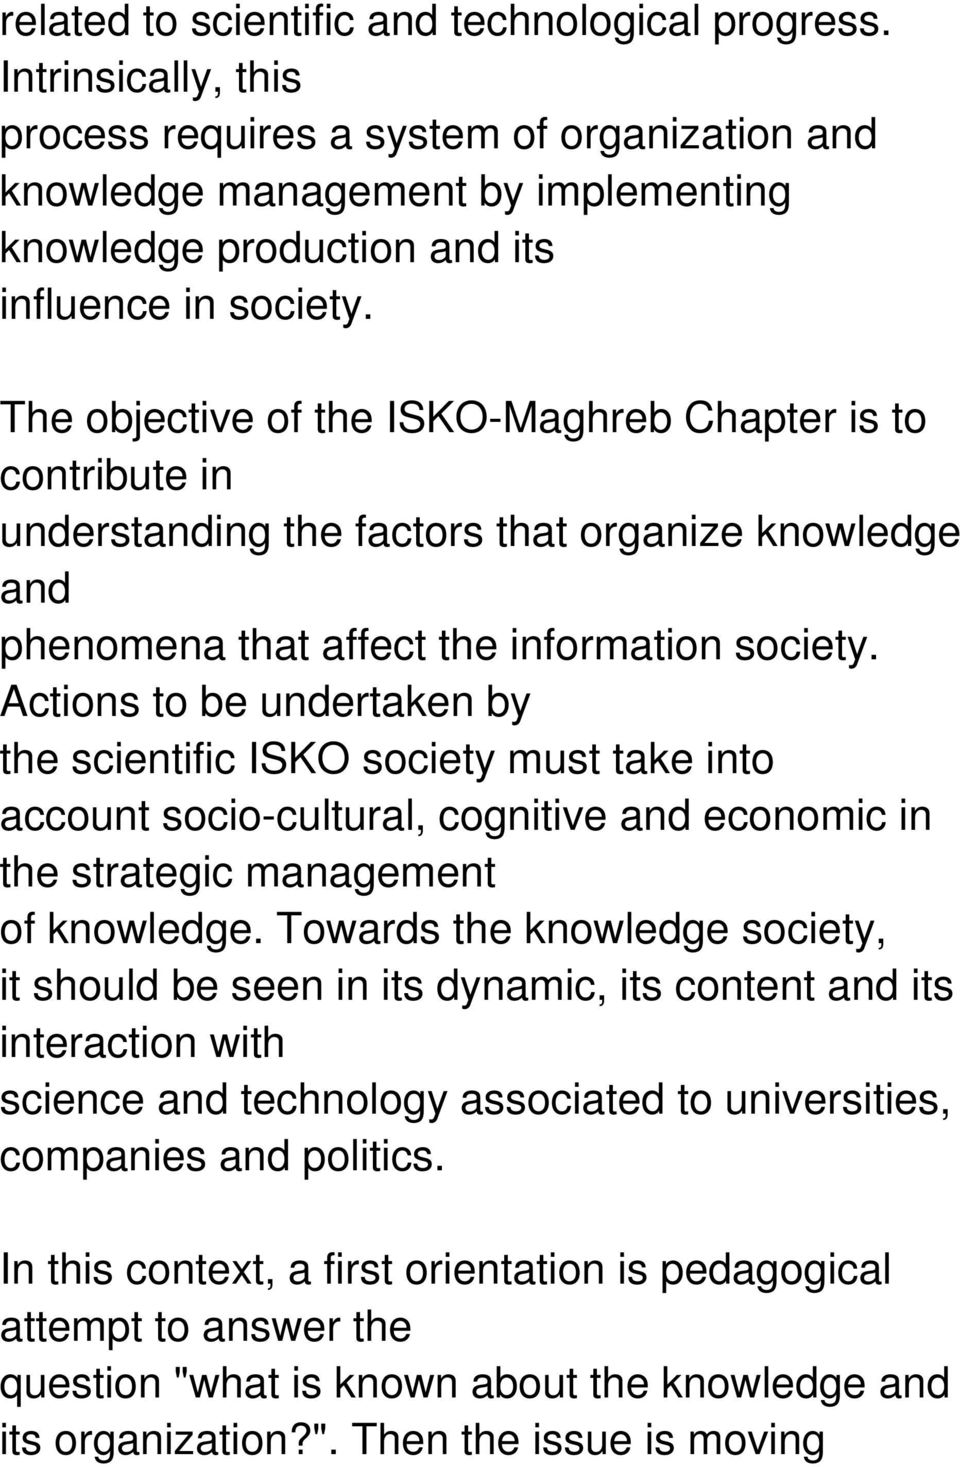 The objective of the ISKO-Maghreb Chapter is to contribute in understanding the factors that organize knowledge and phenomena that affect the information society.